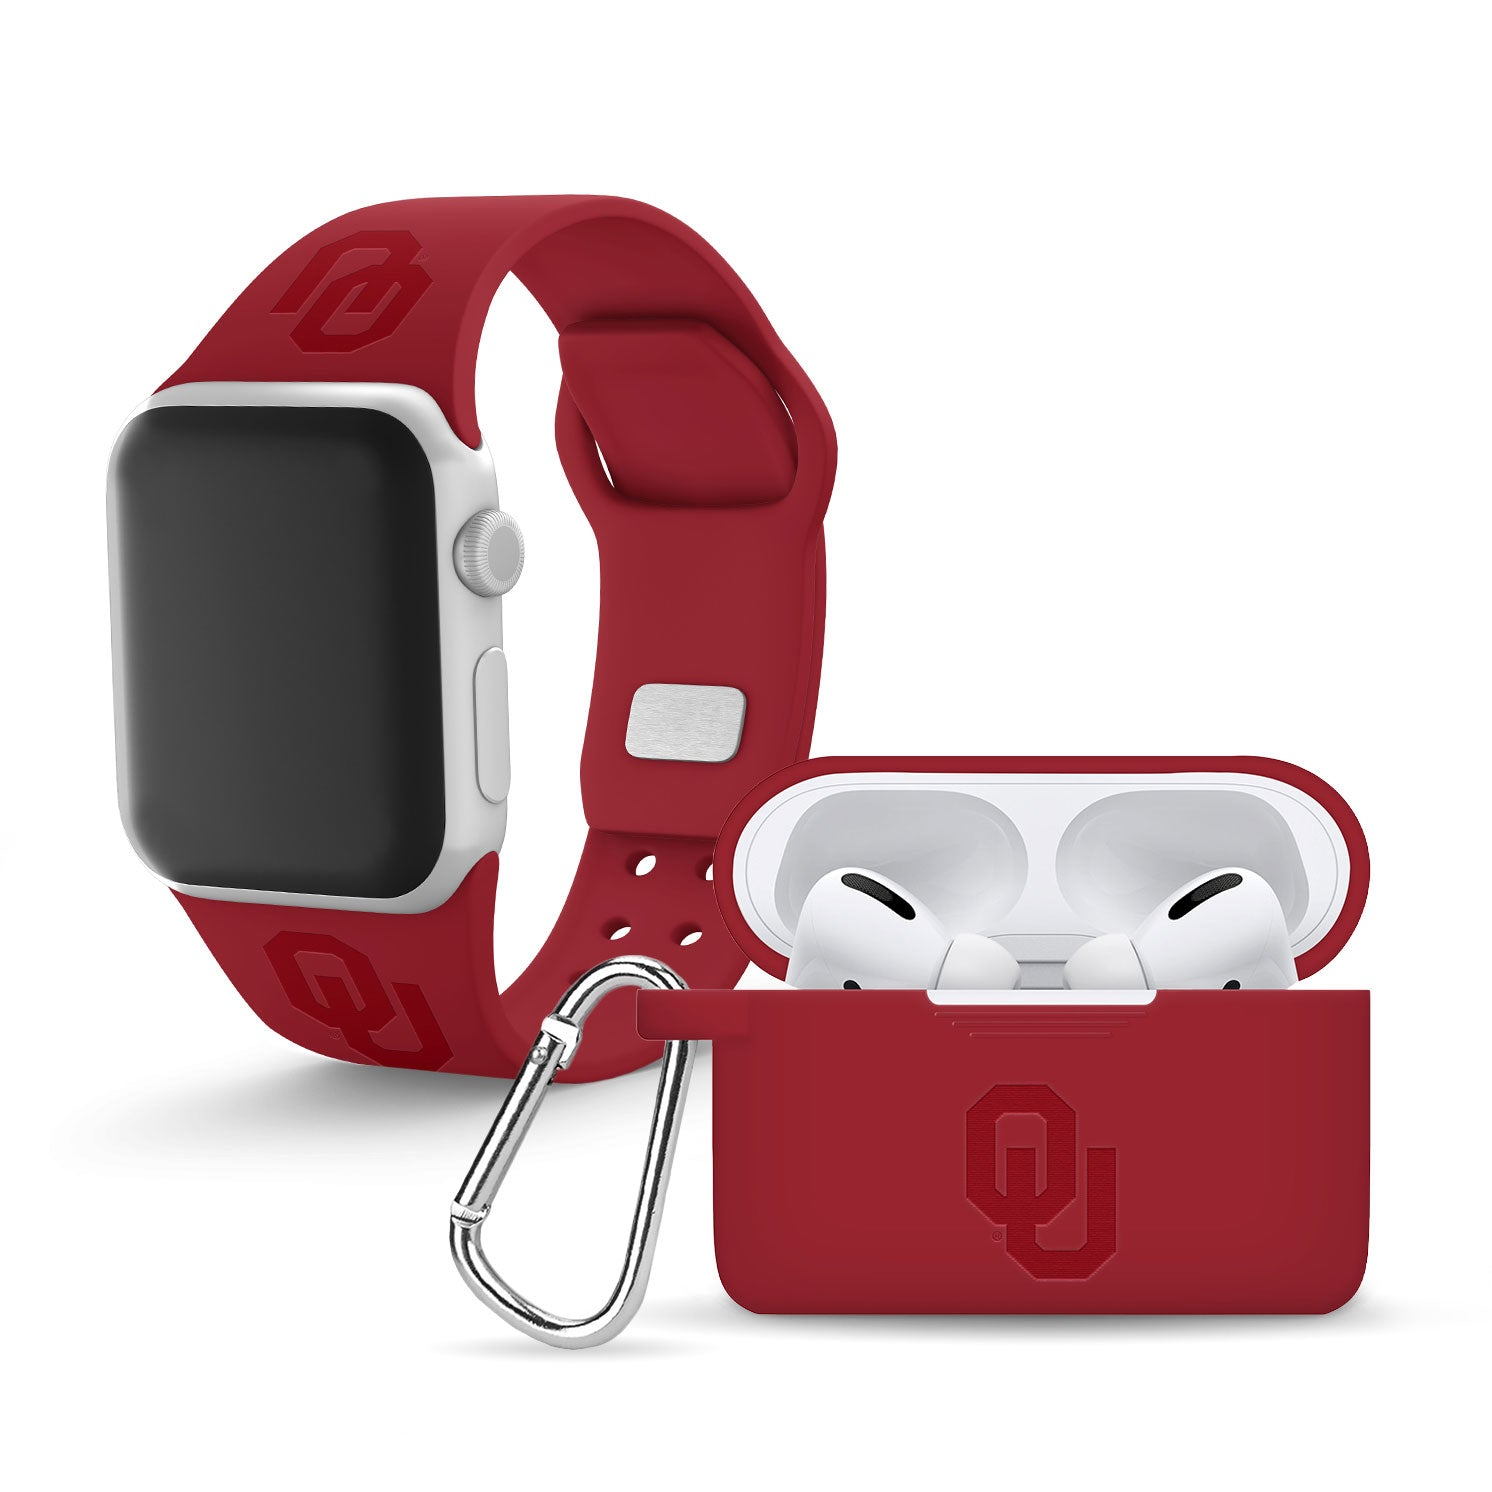 Oklahoma Sooners Apple Watch Band - Red